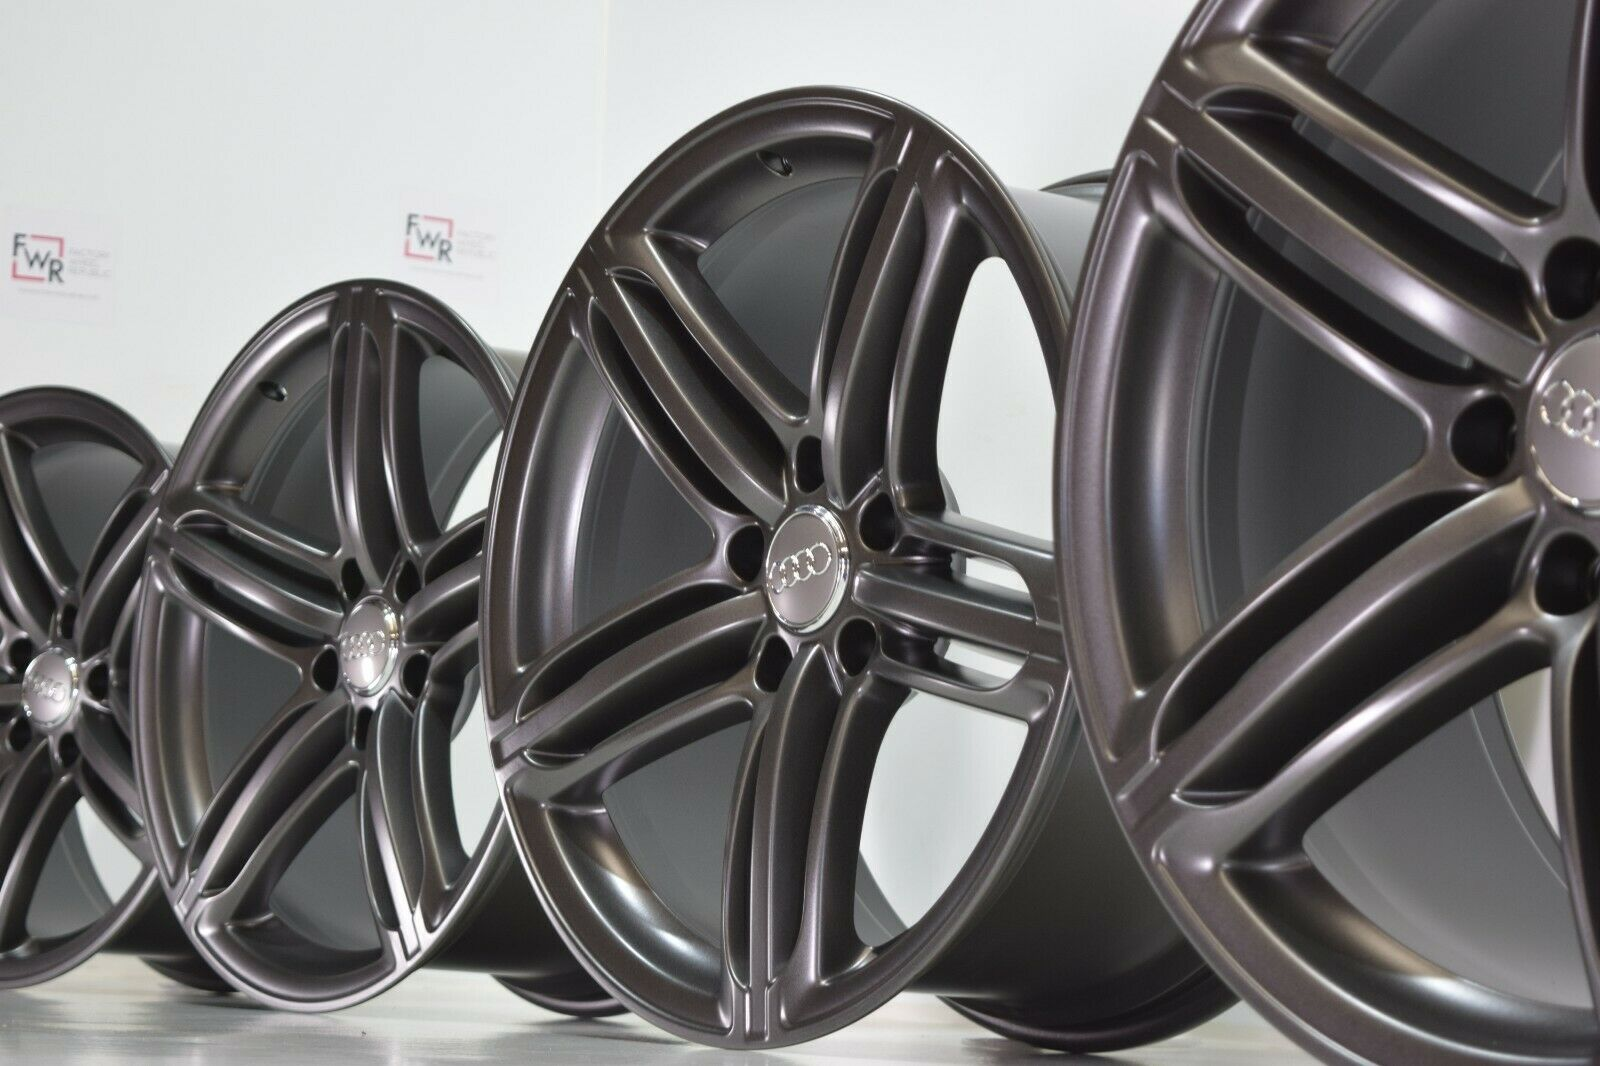 21 AUDI Q7 2011 2012 2013 2014 2015 Titanium Gray Factory OEM Wheels Rims 58886